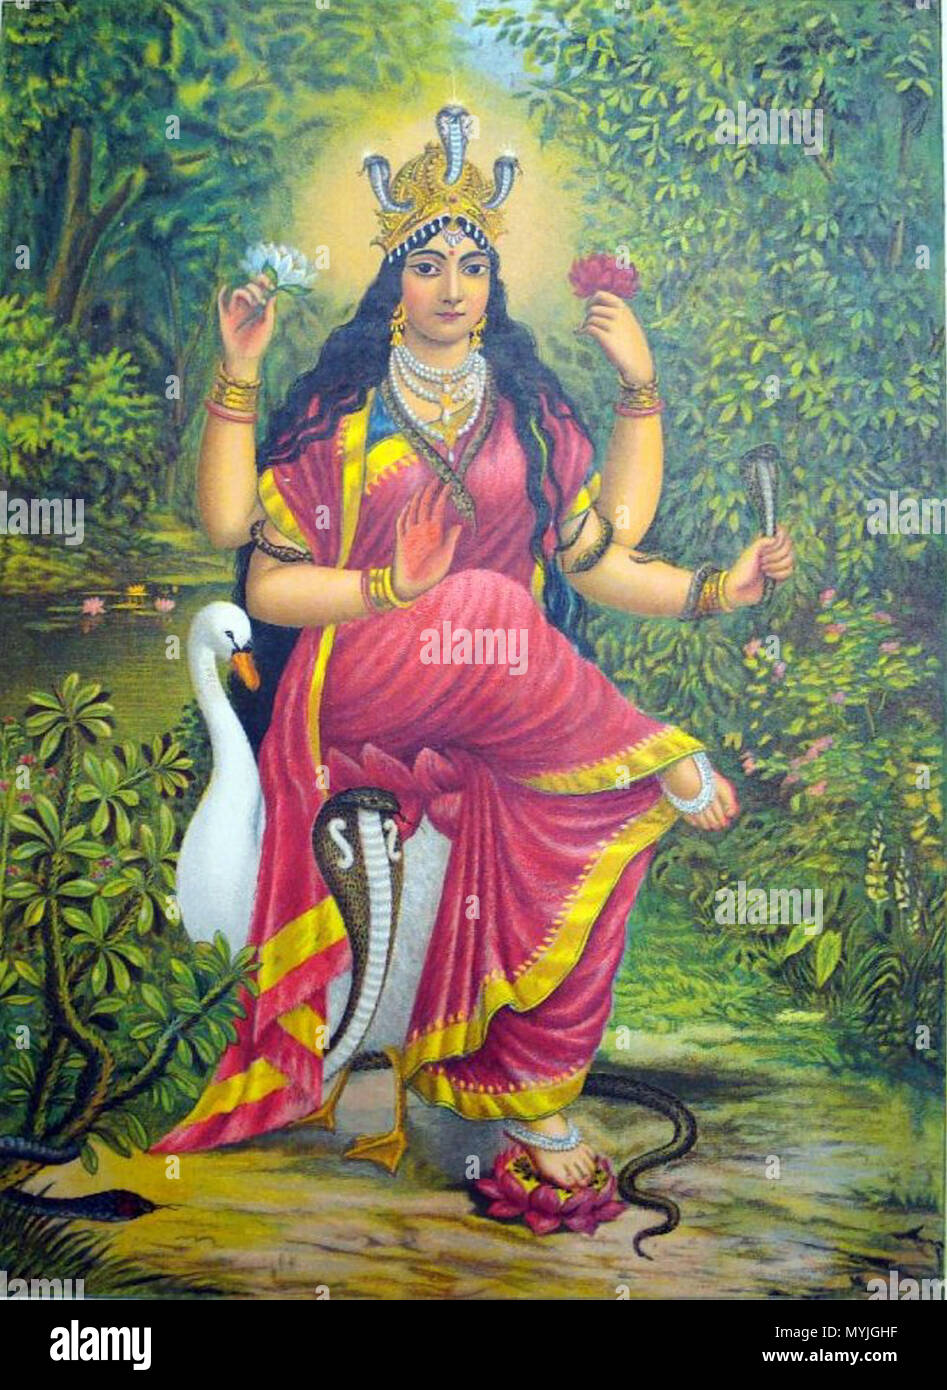 . English: 'Album of popular prints mounted on cloth pages. Colour lithograph, lettered, inscribed and numbered 33. The goddess Manasā in a dense jungle landscape with snakes, seated on a swan and with her left foot resting on a lotus flower.' . 1895. Unknown 340 Manasa Devi - Stock Image